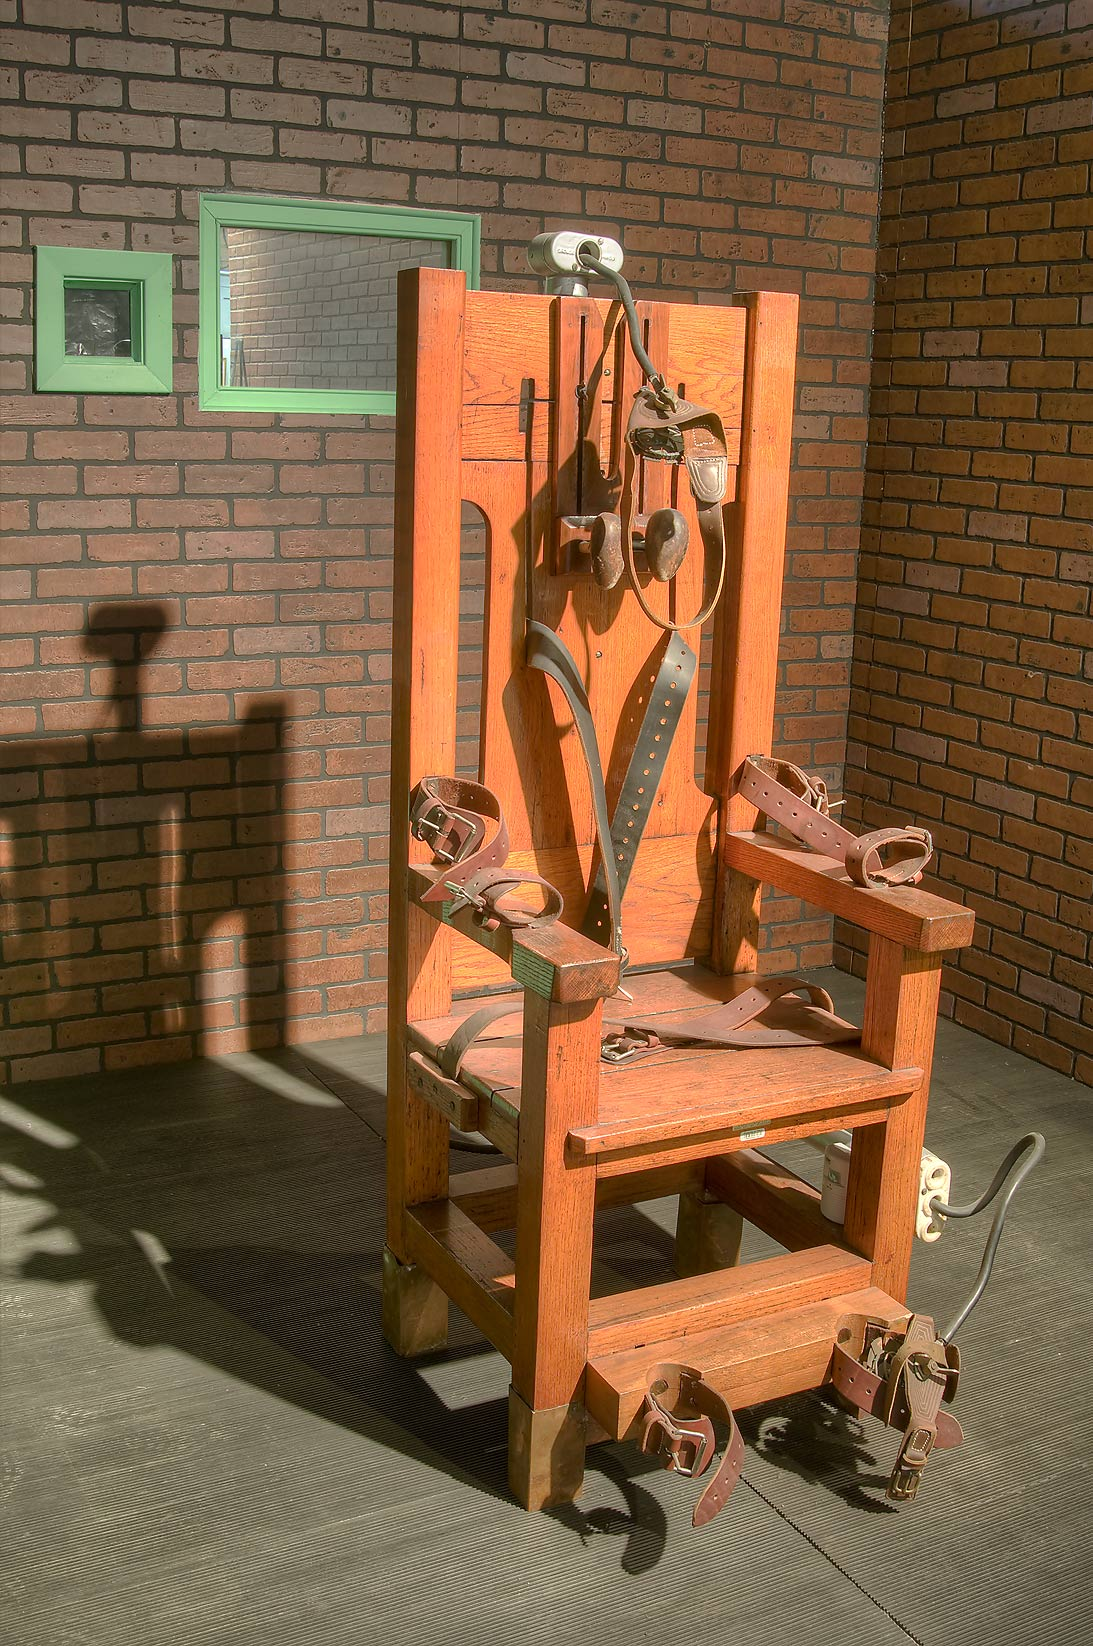 Used electric chair in Prison Museum. Huntsville, Texas